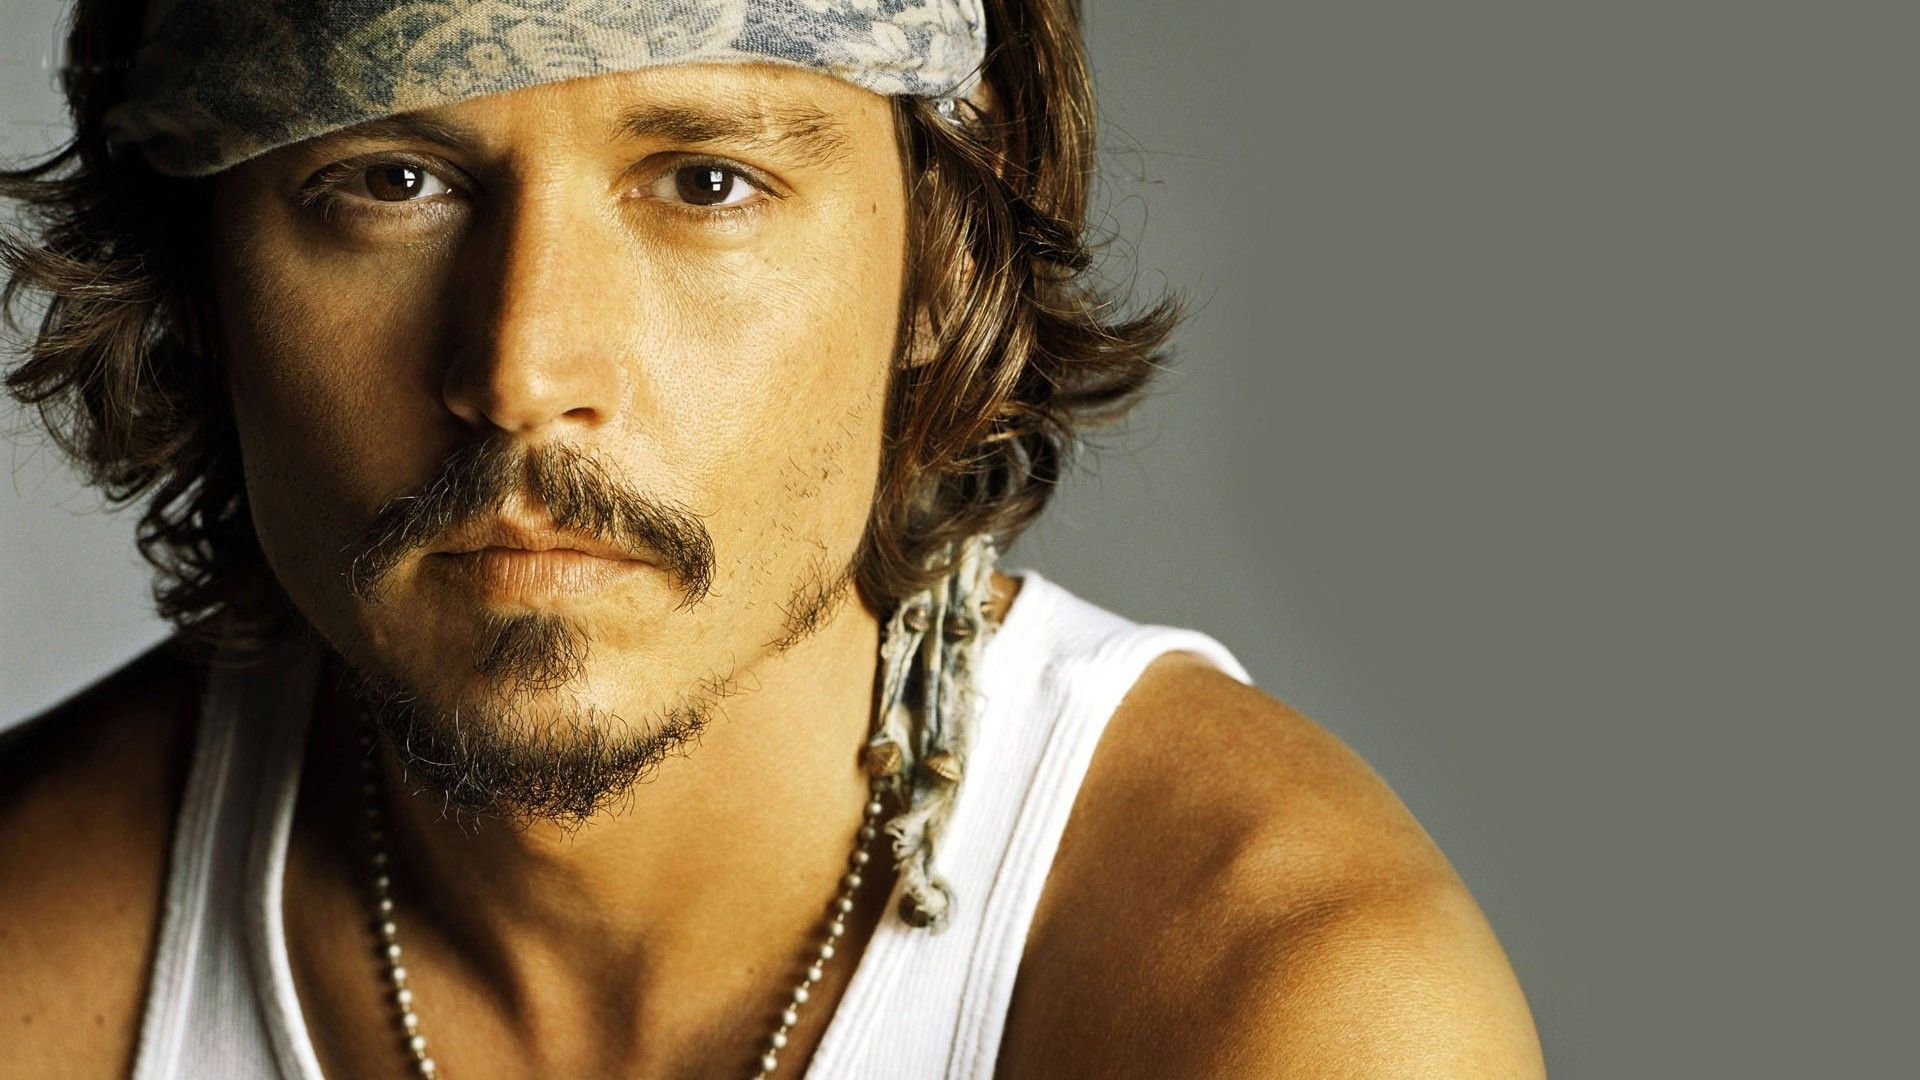 Johnny Depp Wallpapers High Quality Download dumbpuppy 1920x1080